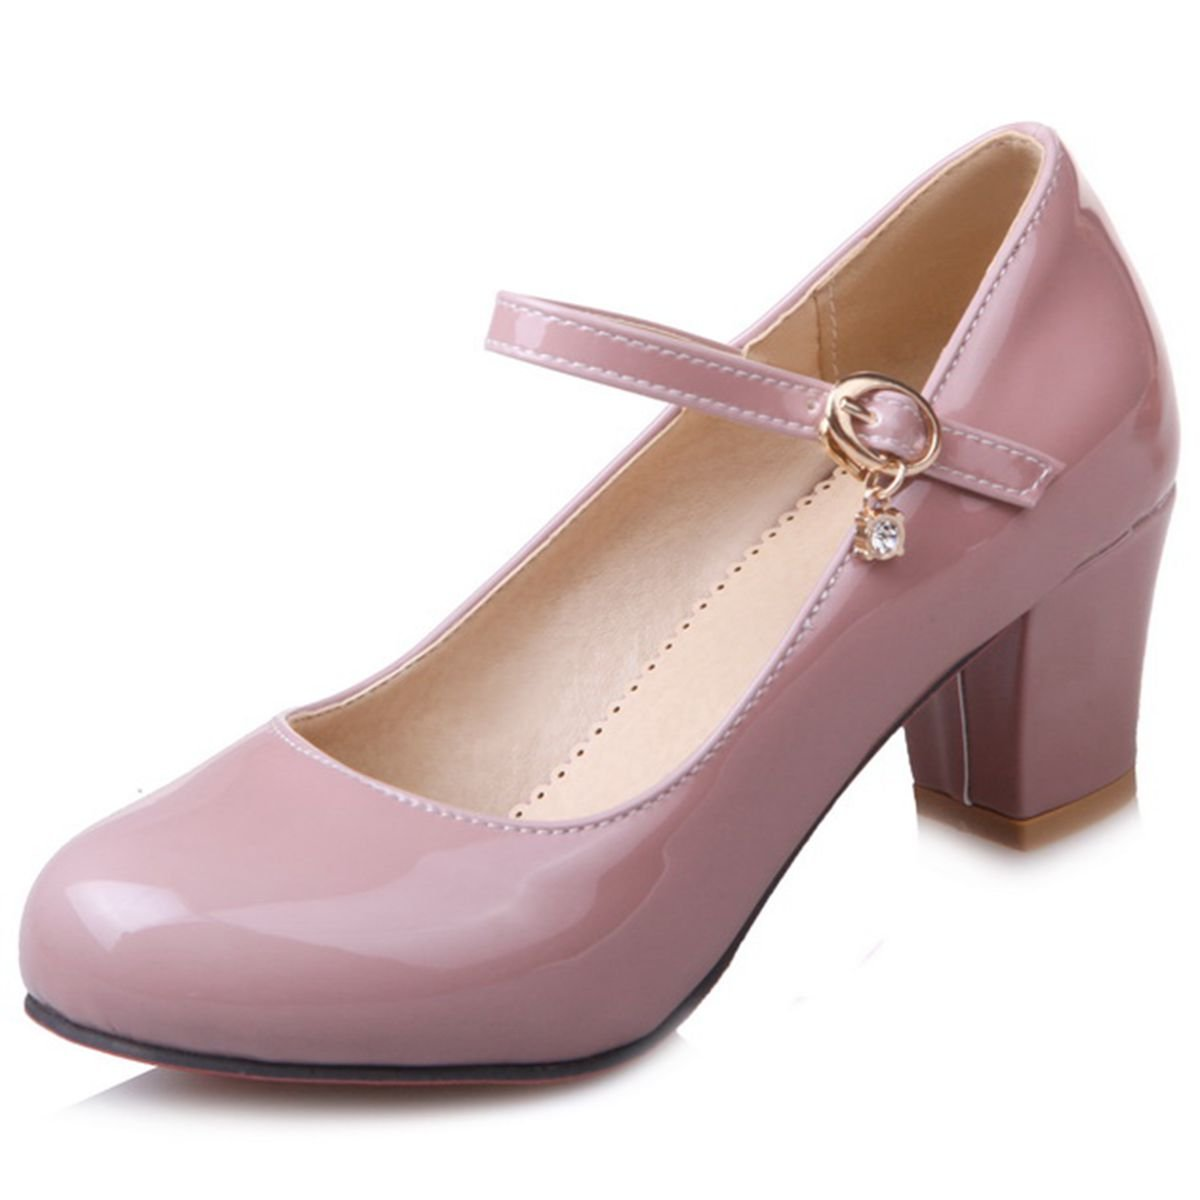 Amazon.com | DecoStain Womens Causal Patent PU Leather Ankle Strap Mary Janes Block Mid Heel Pumps Shoes | Pumps